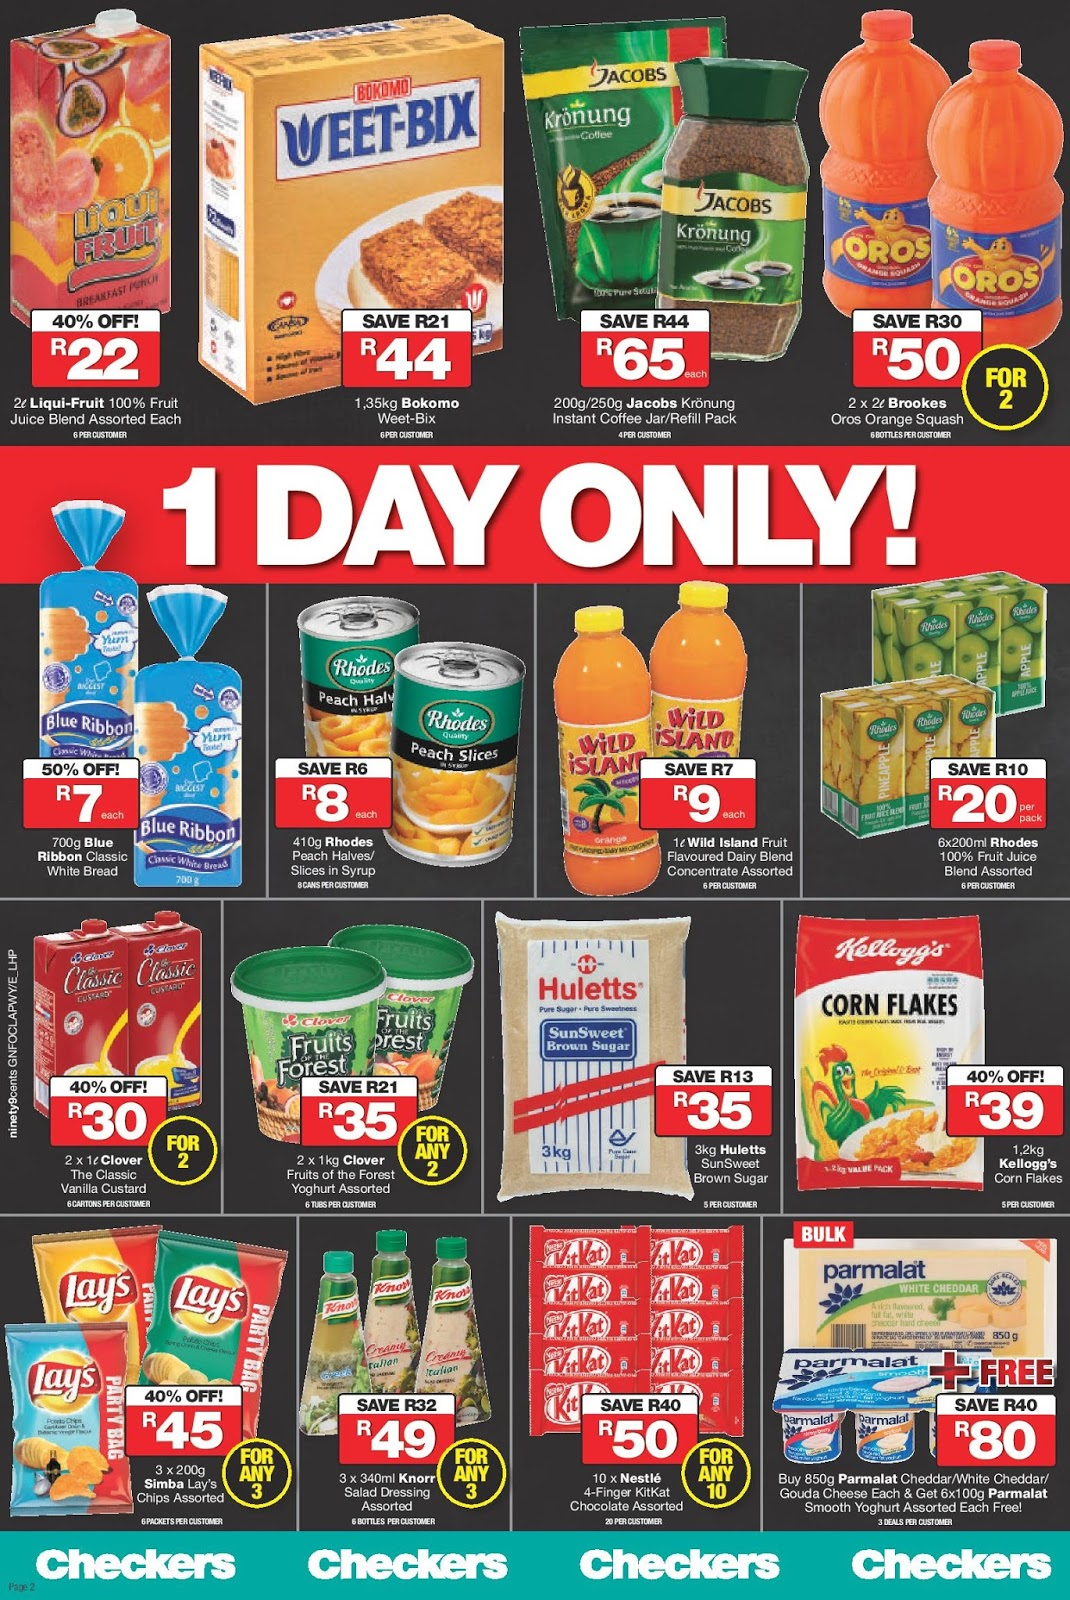 Back Friday Blackfriday Gauteng Checkers Black Friday Pics And Pdf